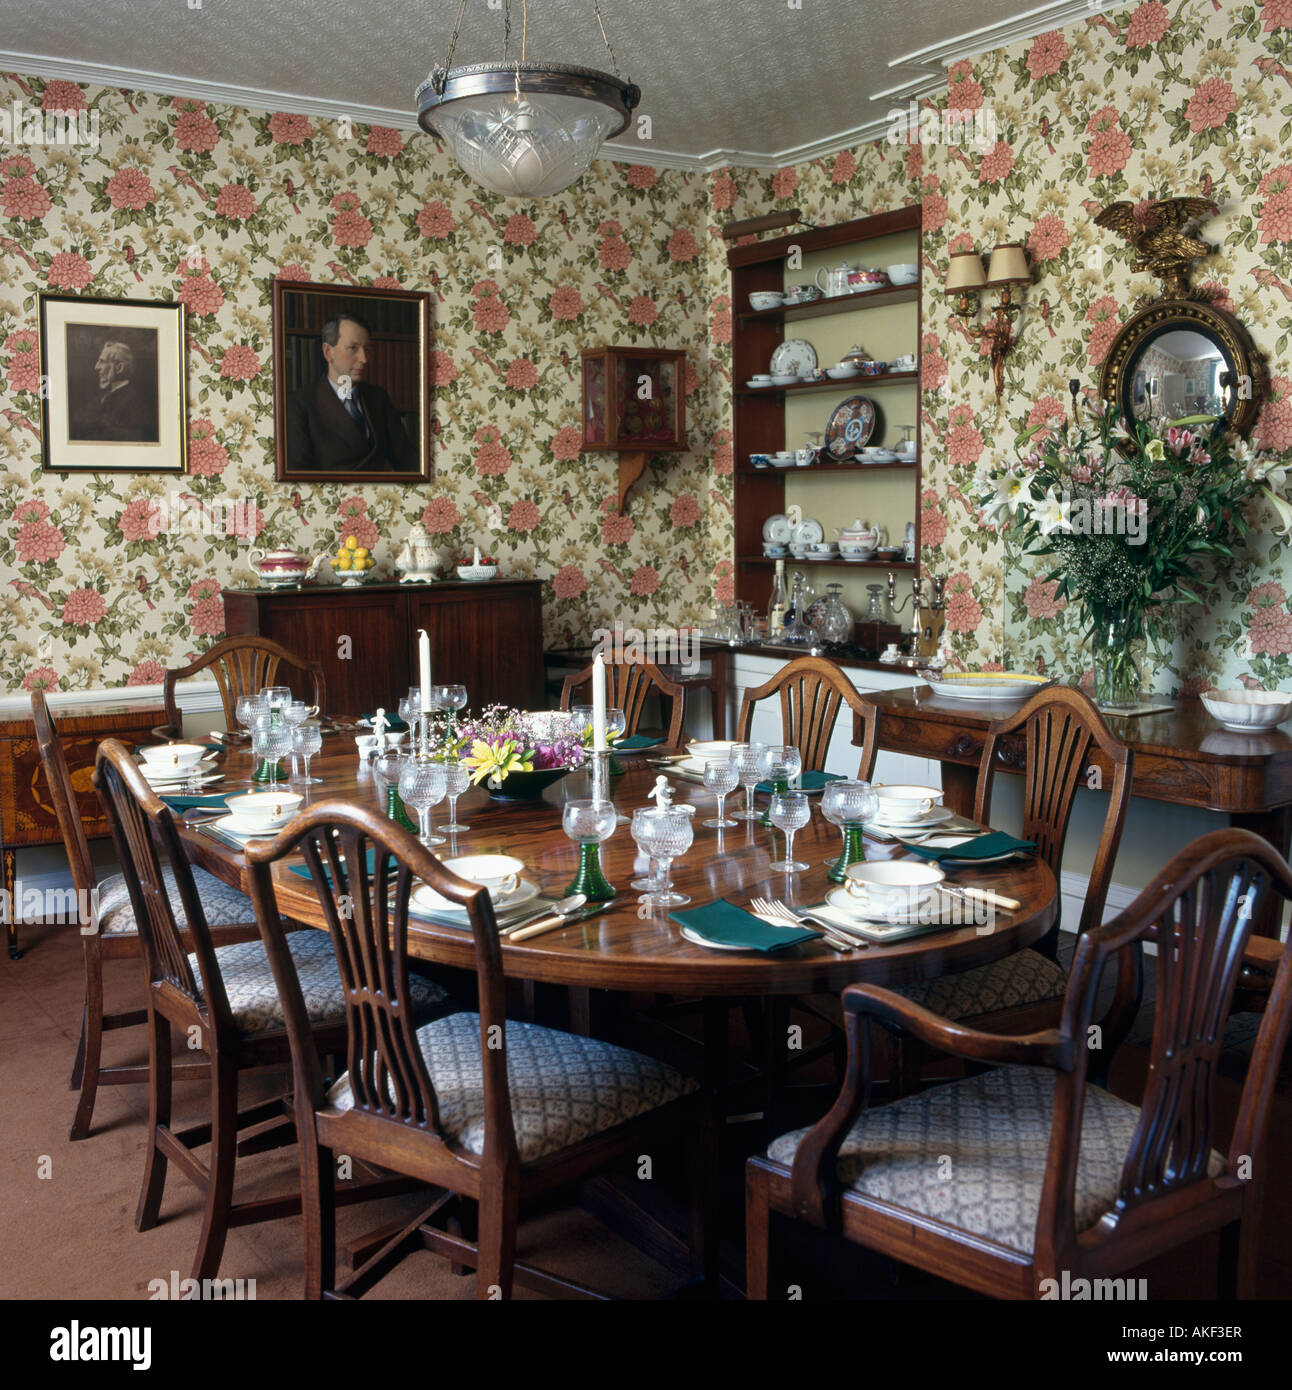 Awesome Floral Wallpaper In Formal Dining Room With Place Settings On The Table